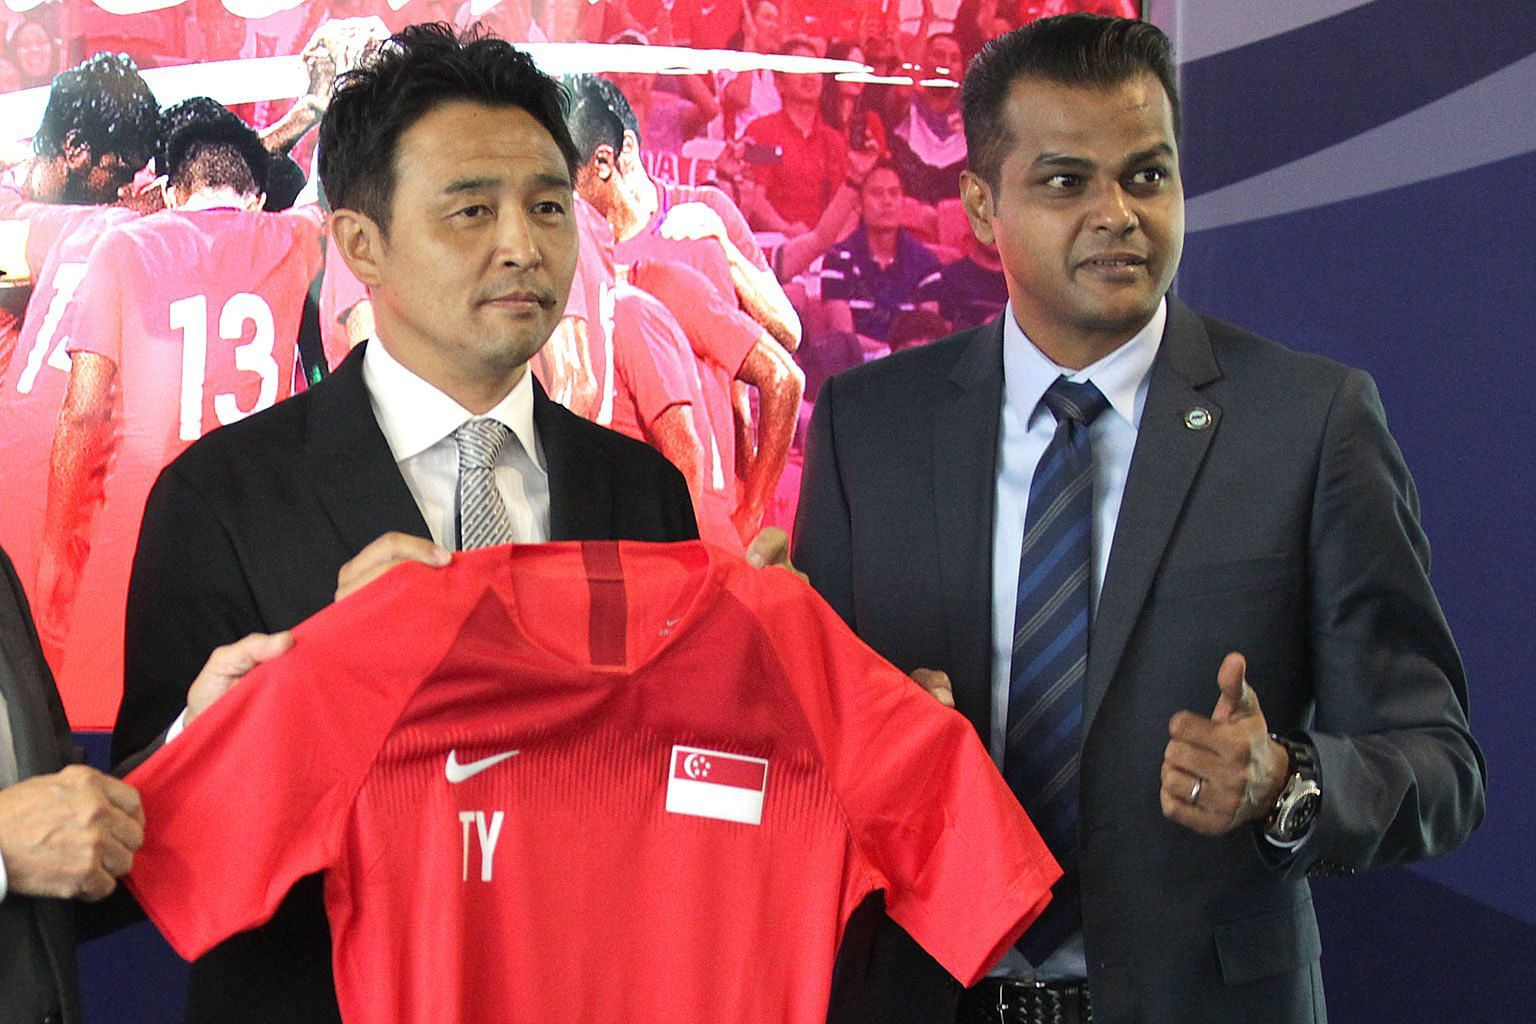 National coach Tatsuma Yoshida (left) was inspired by front line workers to give to a good cause while FAS general secretary Yazeen Buhari was moved to help underprivileged youths.